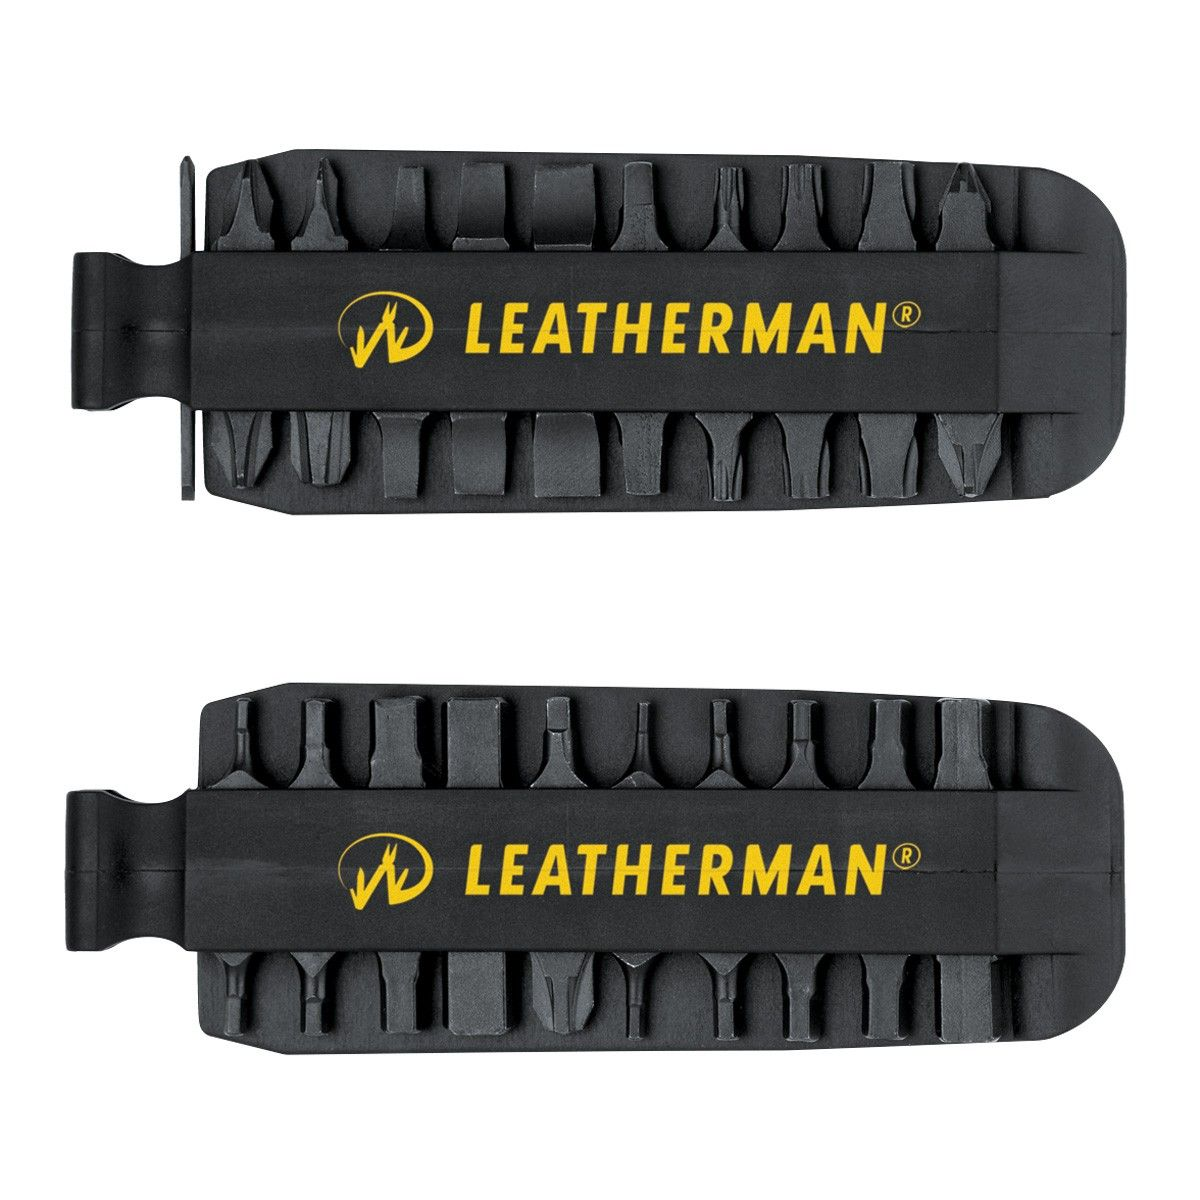 Leatherman Replacement Bit Set